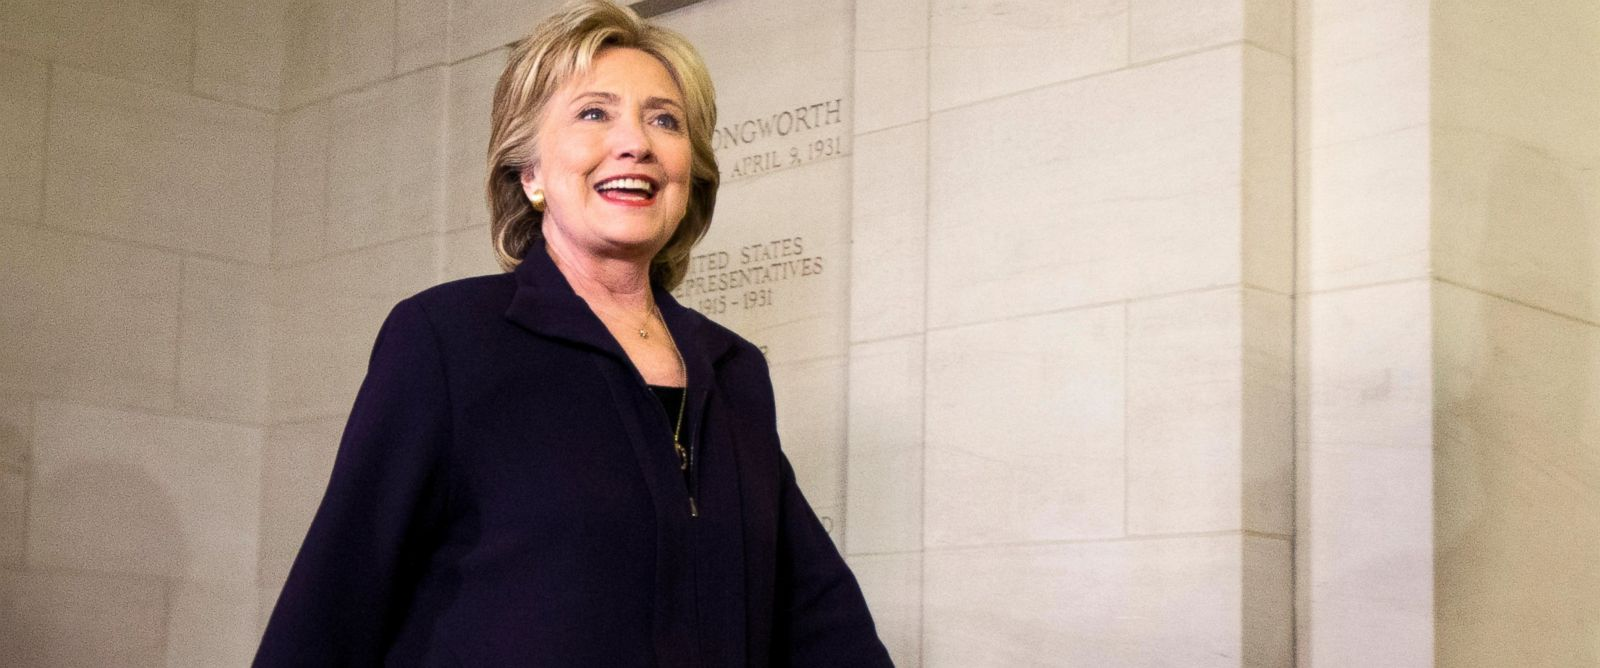 PHOTO:Democratic presidential candidate and former Secretary of State Hillary Clinton leaves the Longworth House office building at the conclusion of her testimony before the House Select Committee on Benghazi in Washington, Oct. 22, 2015.